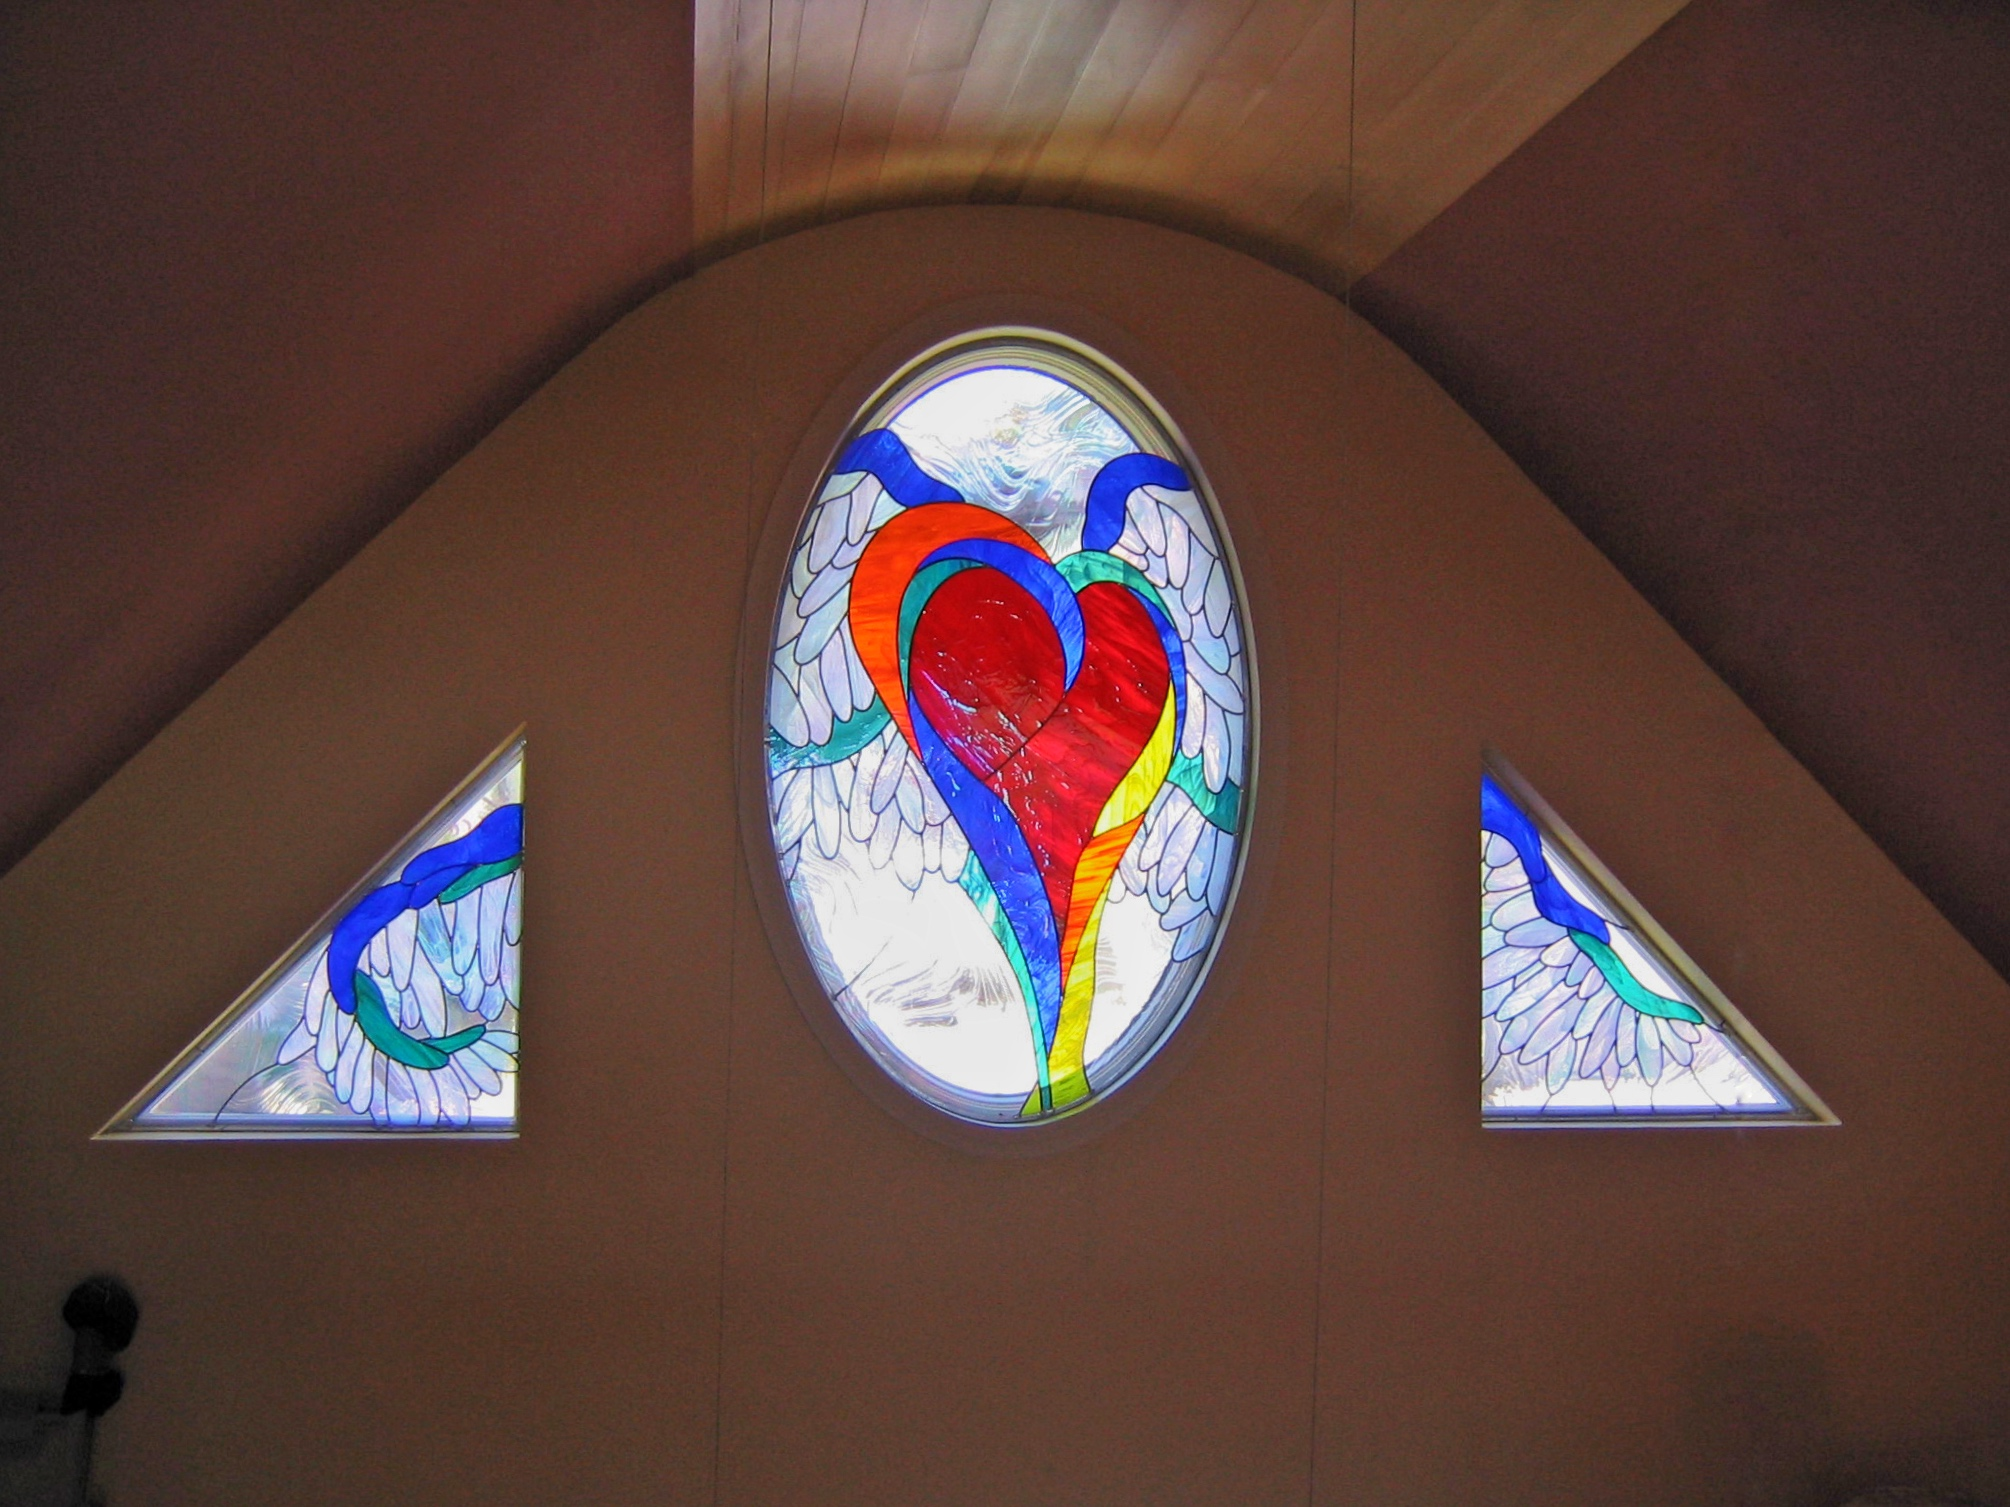 A local artist wanted their drawing made into stained glass for their home